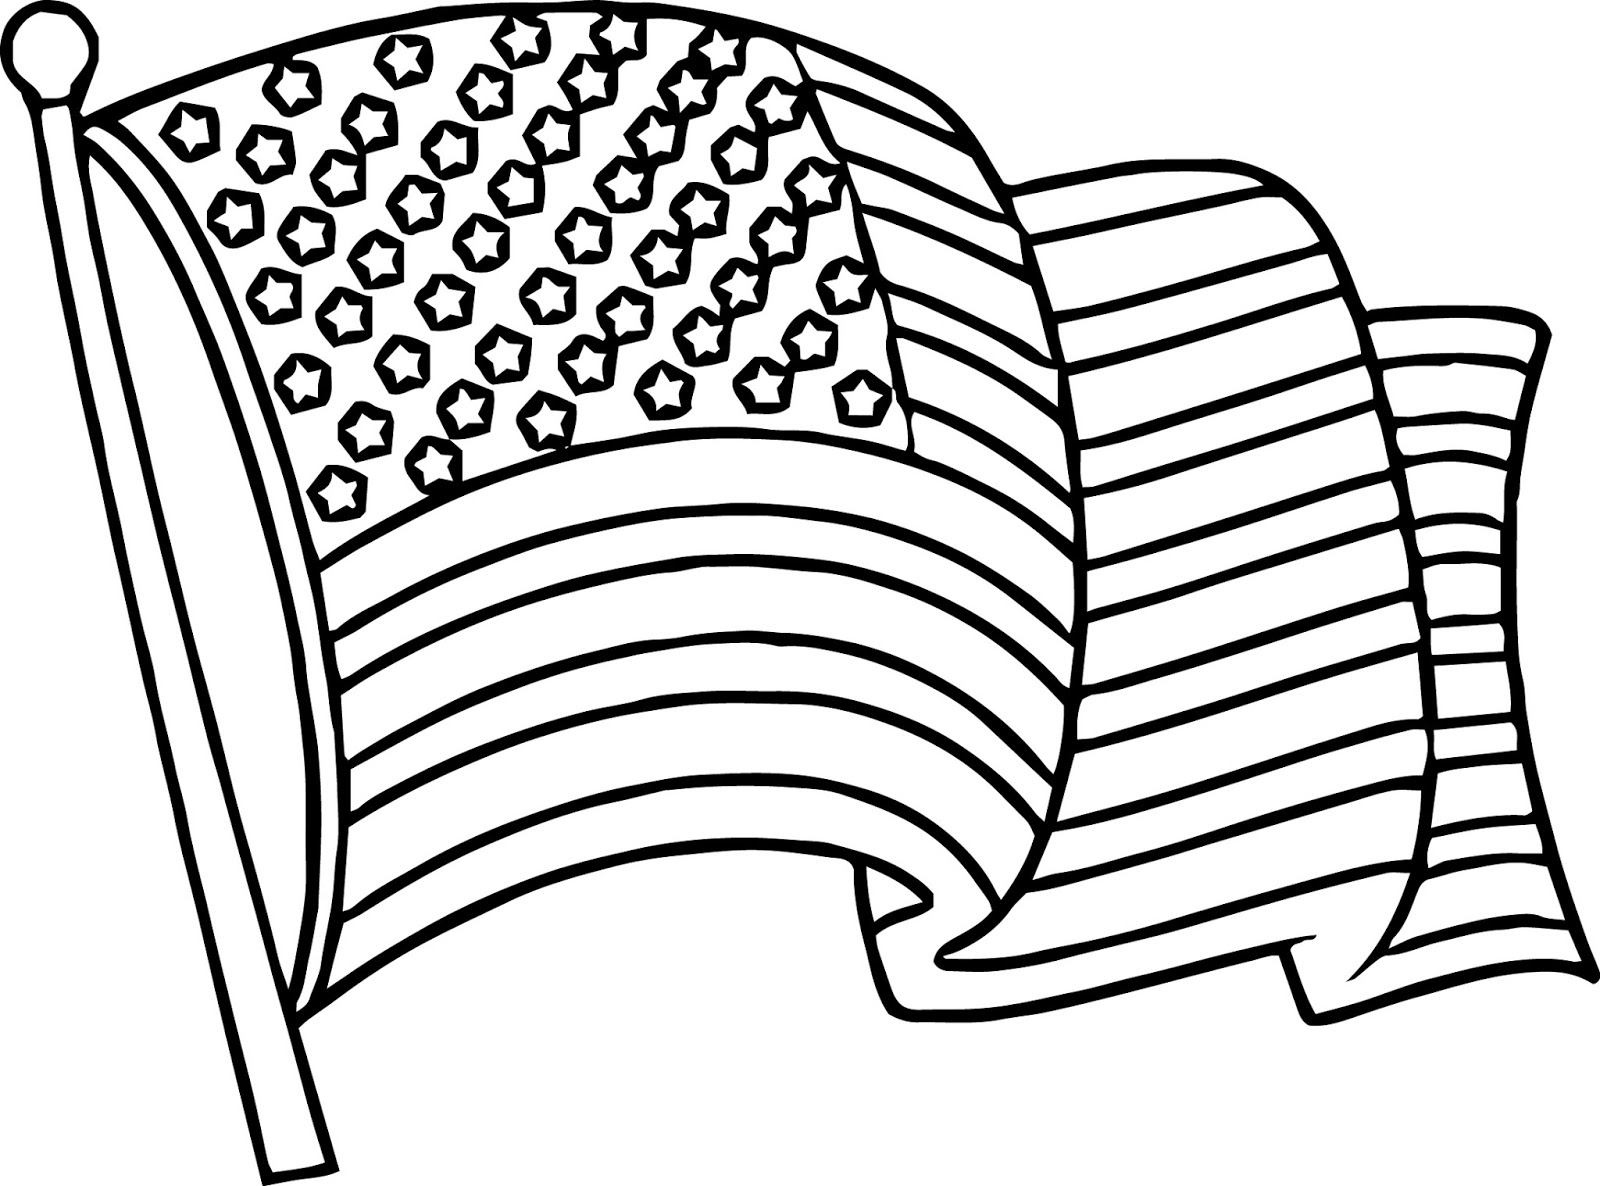 American Flag Coloring Pages Best Coloring Pages For Kids American Flag Colouring Page